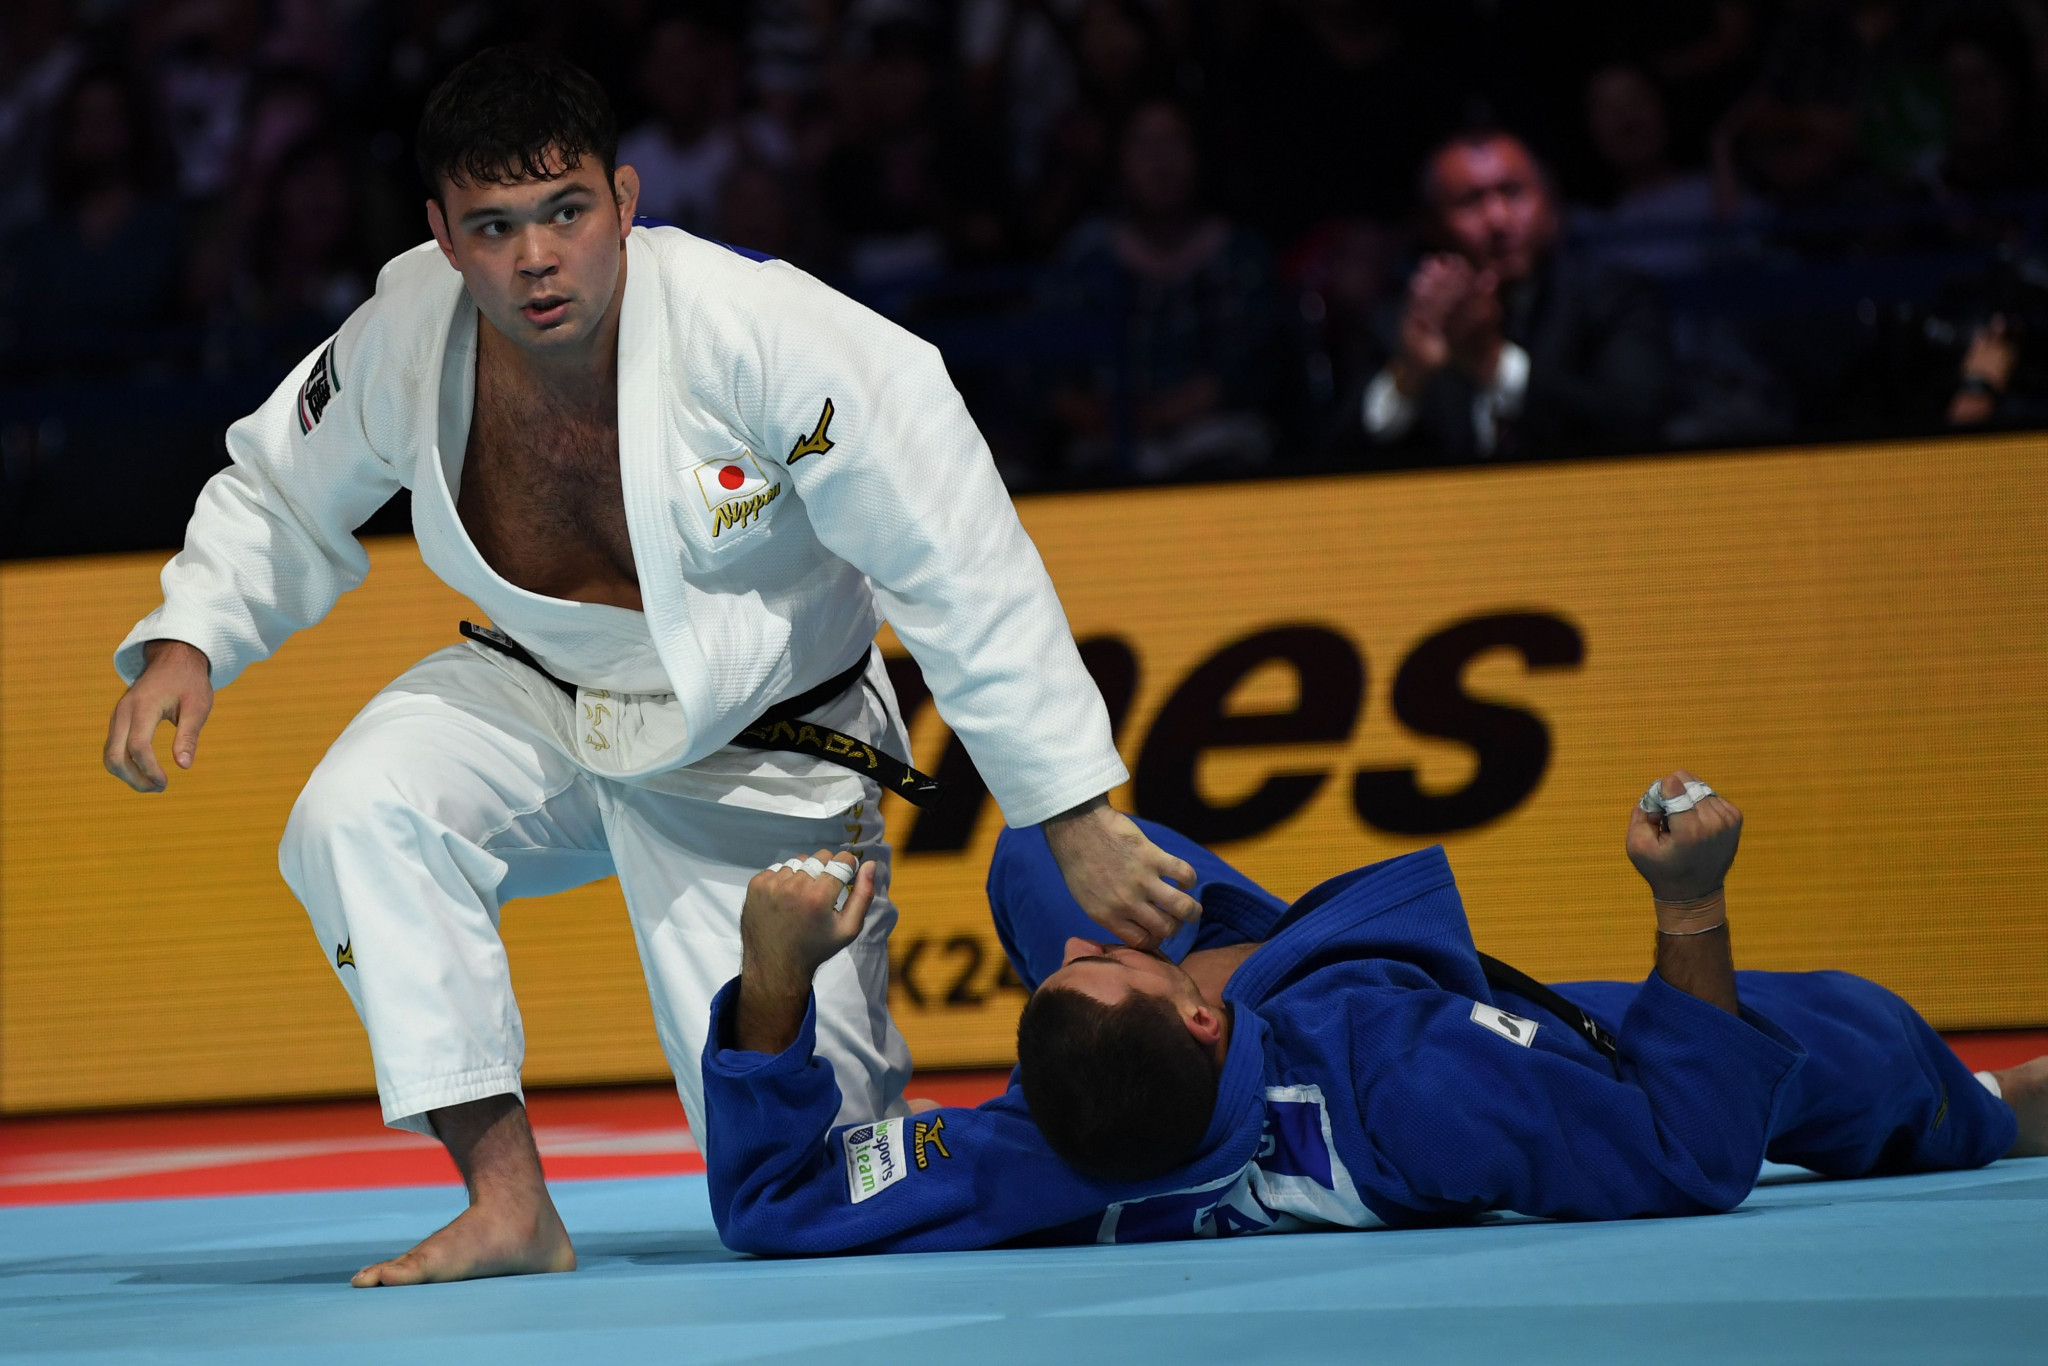 Japan's Tokyo 2020-bound judo stars win double gold at Asia-Oceania Judo Championships